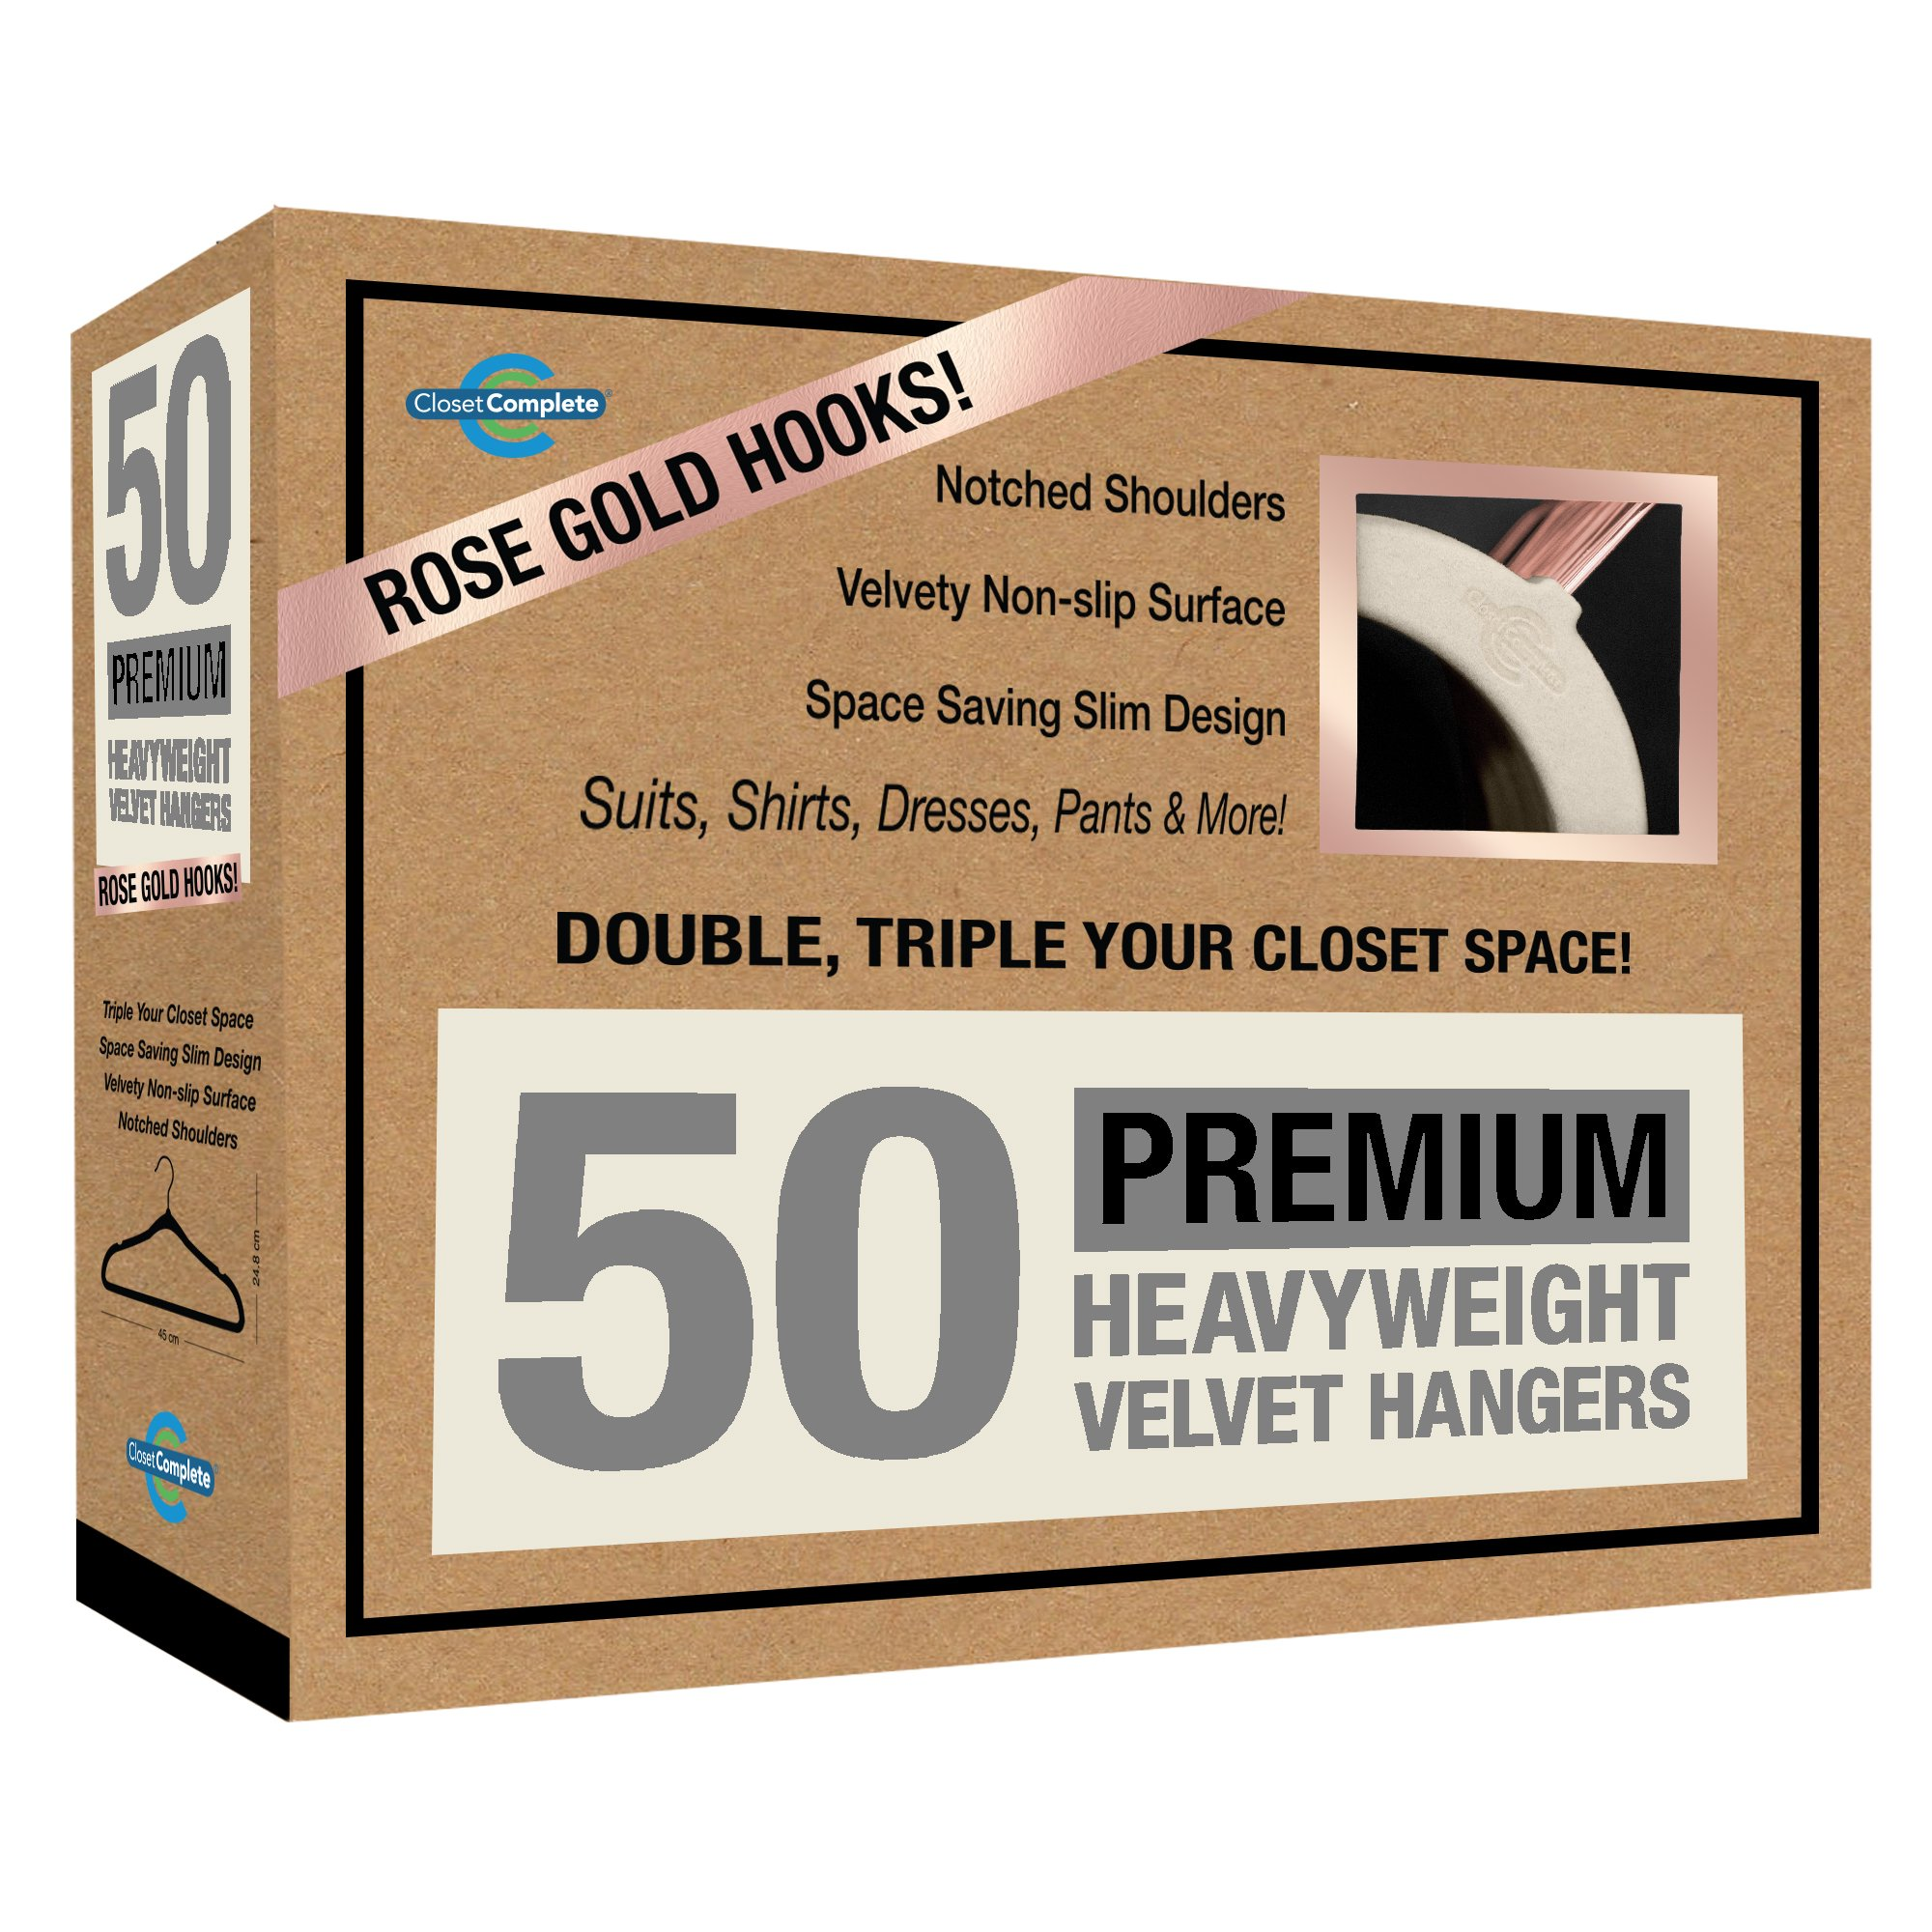 Closet Complete Premium Quality, True-Heavyweight, 80-gram, Virtually-UNBREAKABLE Velvet Hangers, Ultra-Thin,  No Slip, Best for SUIT, Dress, Pants, Shirt, 360º Spin, ROSE GOLD Hooks, Ivory Set of 50